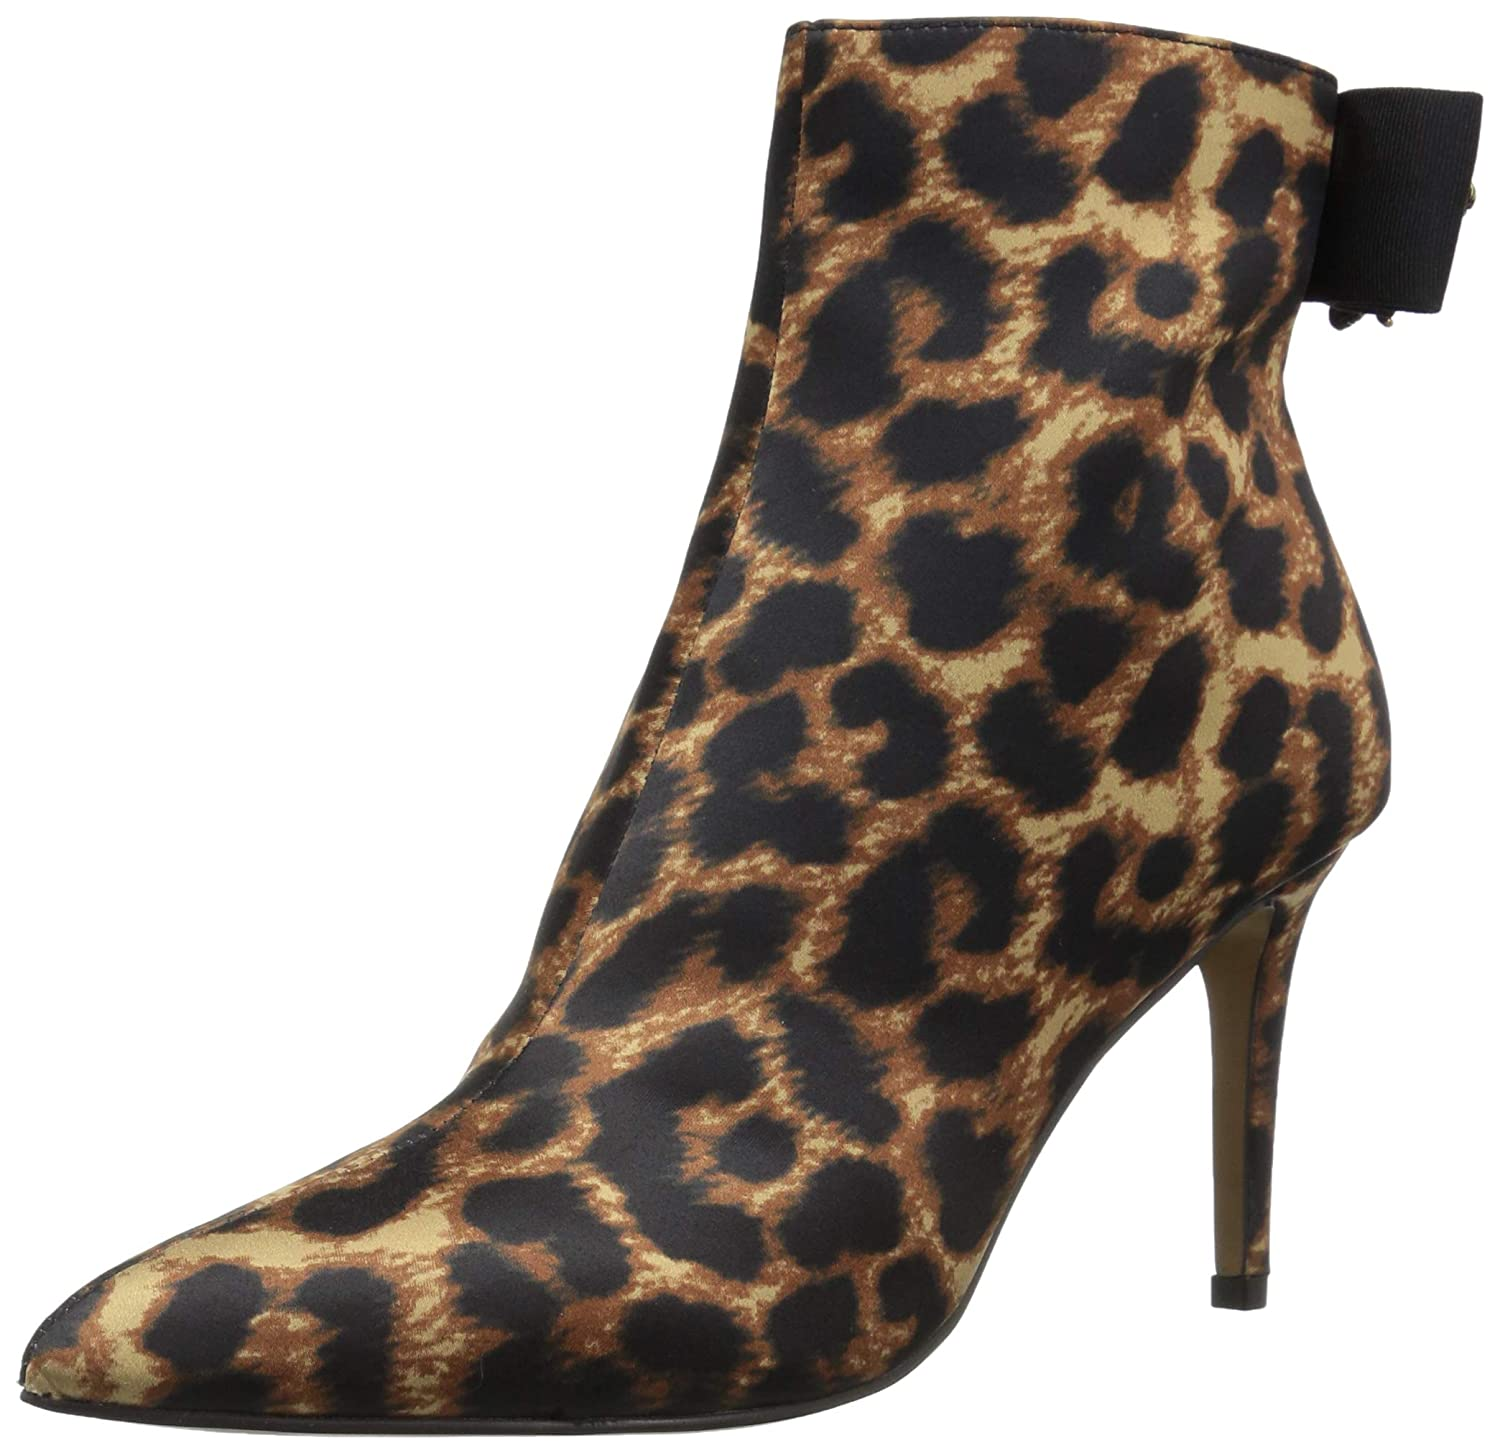 bed3c2be22e2 Amazon.com: Betsey Johnson Women's Haze Ankle Boot: Shoes